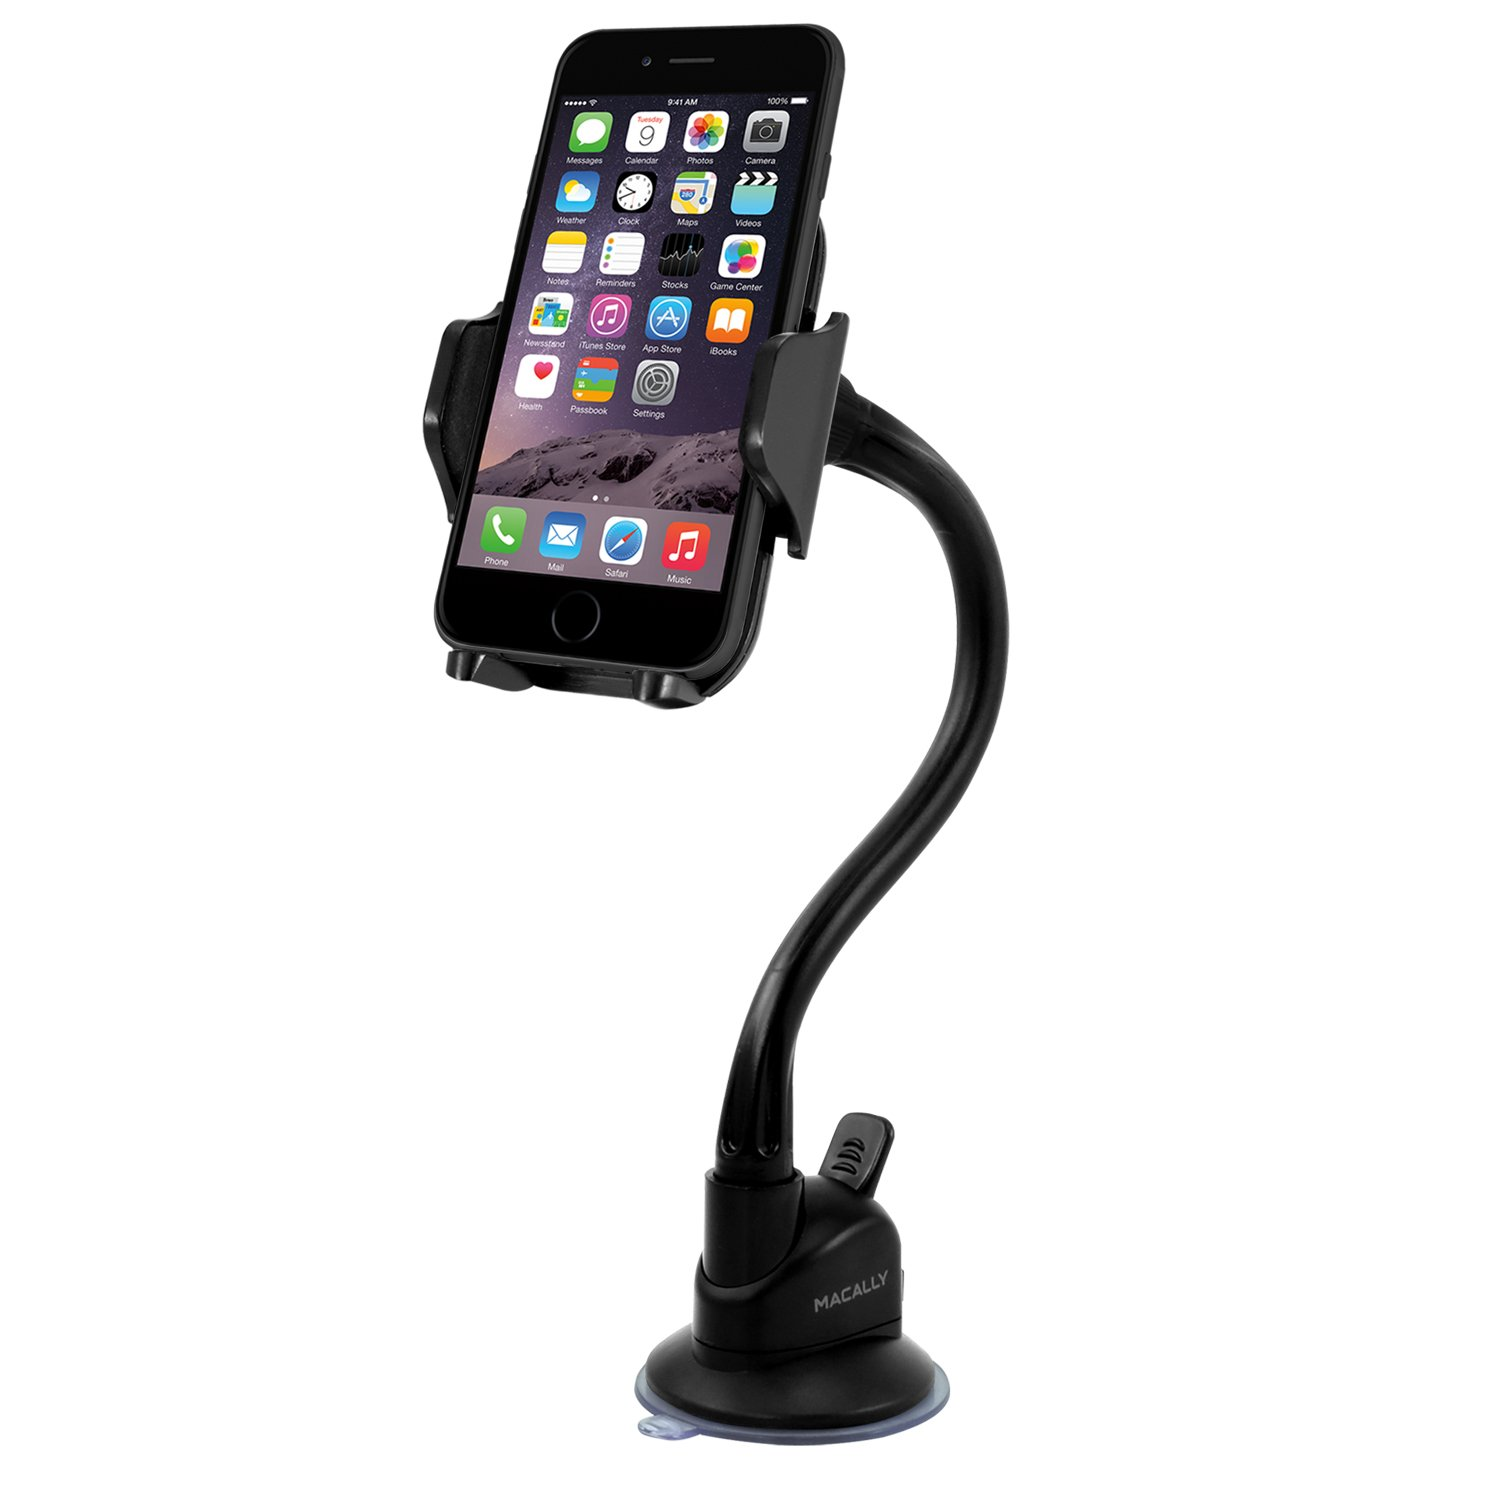 Amazon com macally windshield phone mount adjustable suction cup window mount phone holder for iphone x 8 8 plus 7 7 6s 6 plus se samsung galaxy s8 s8